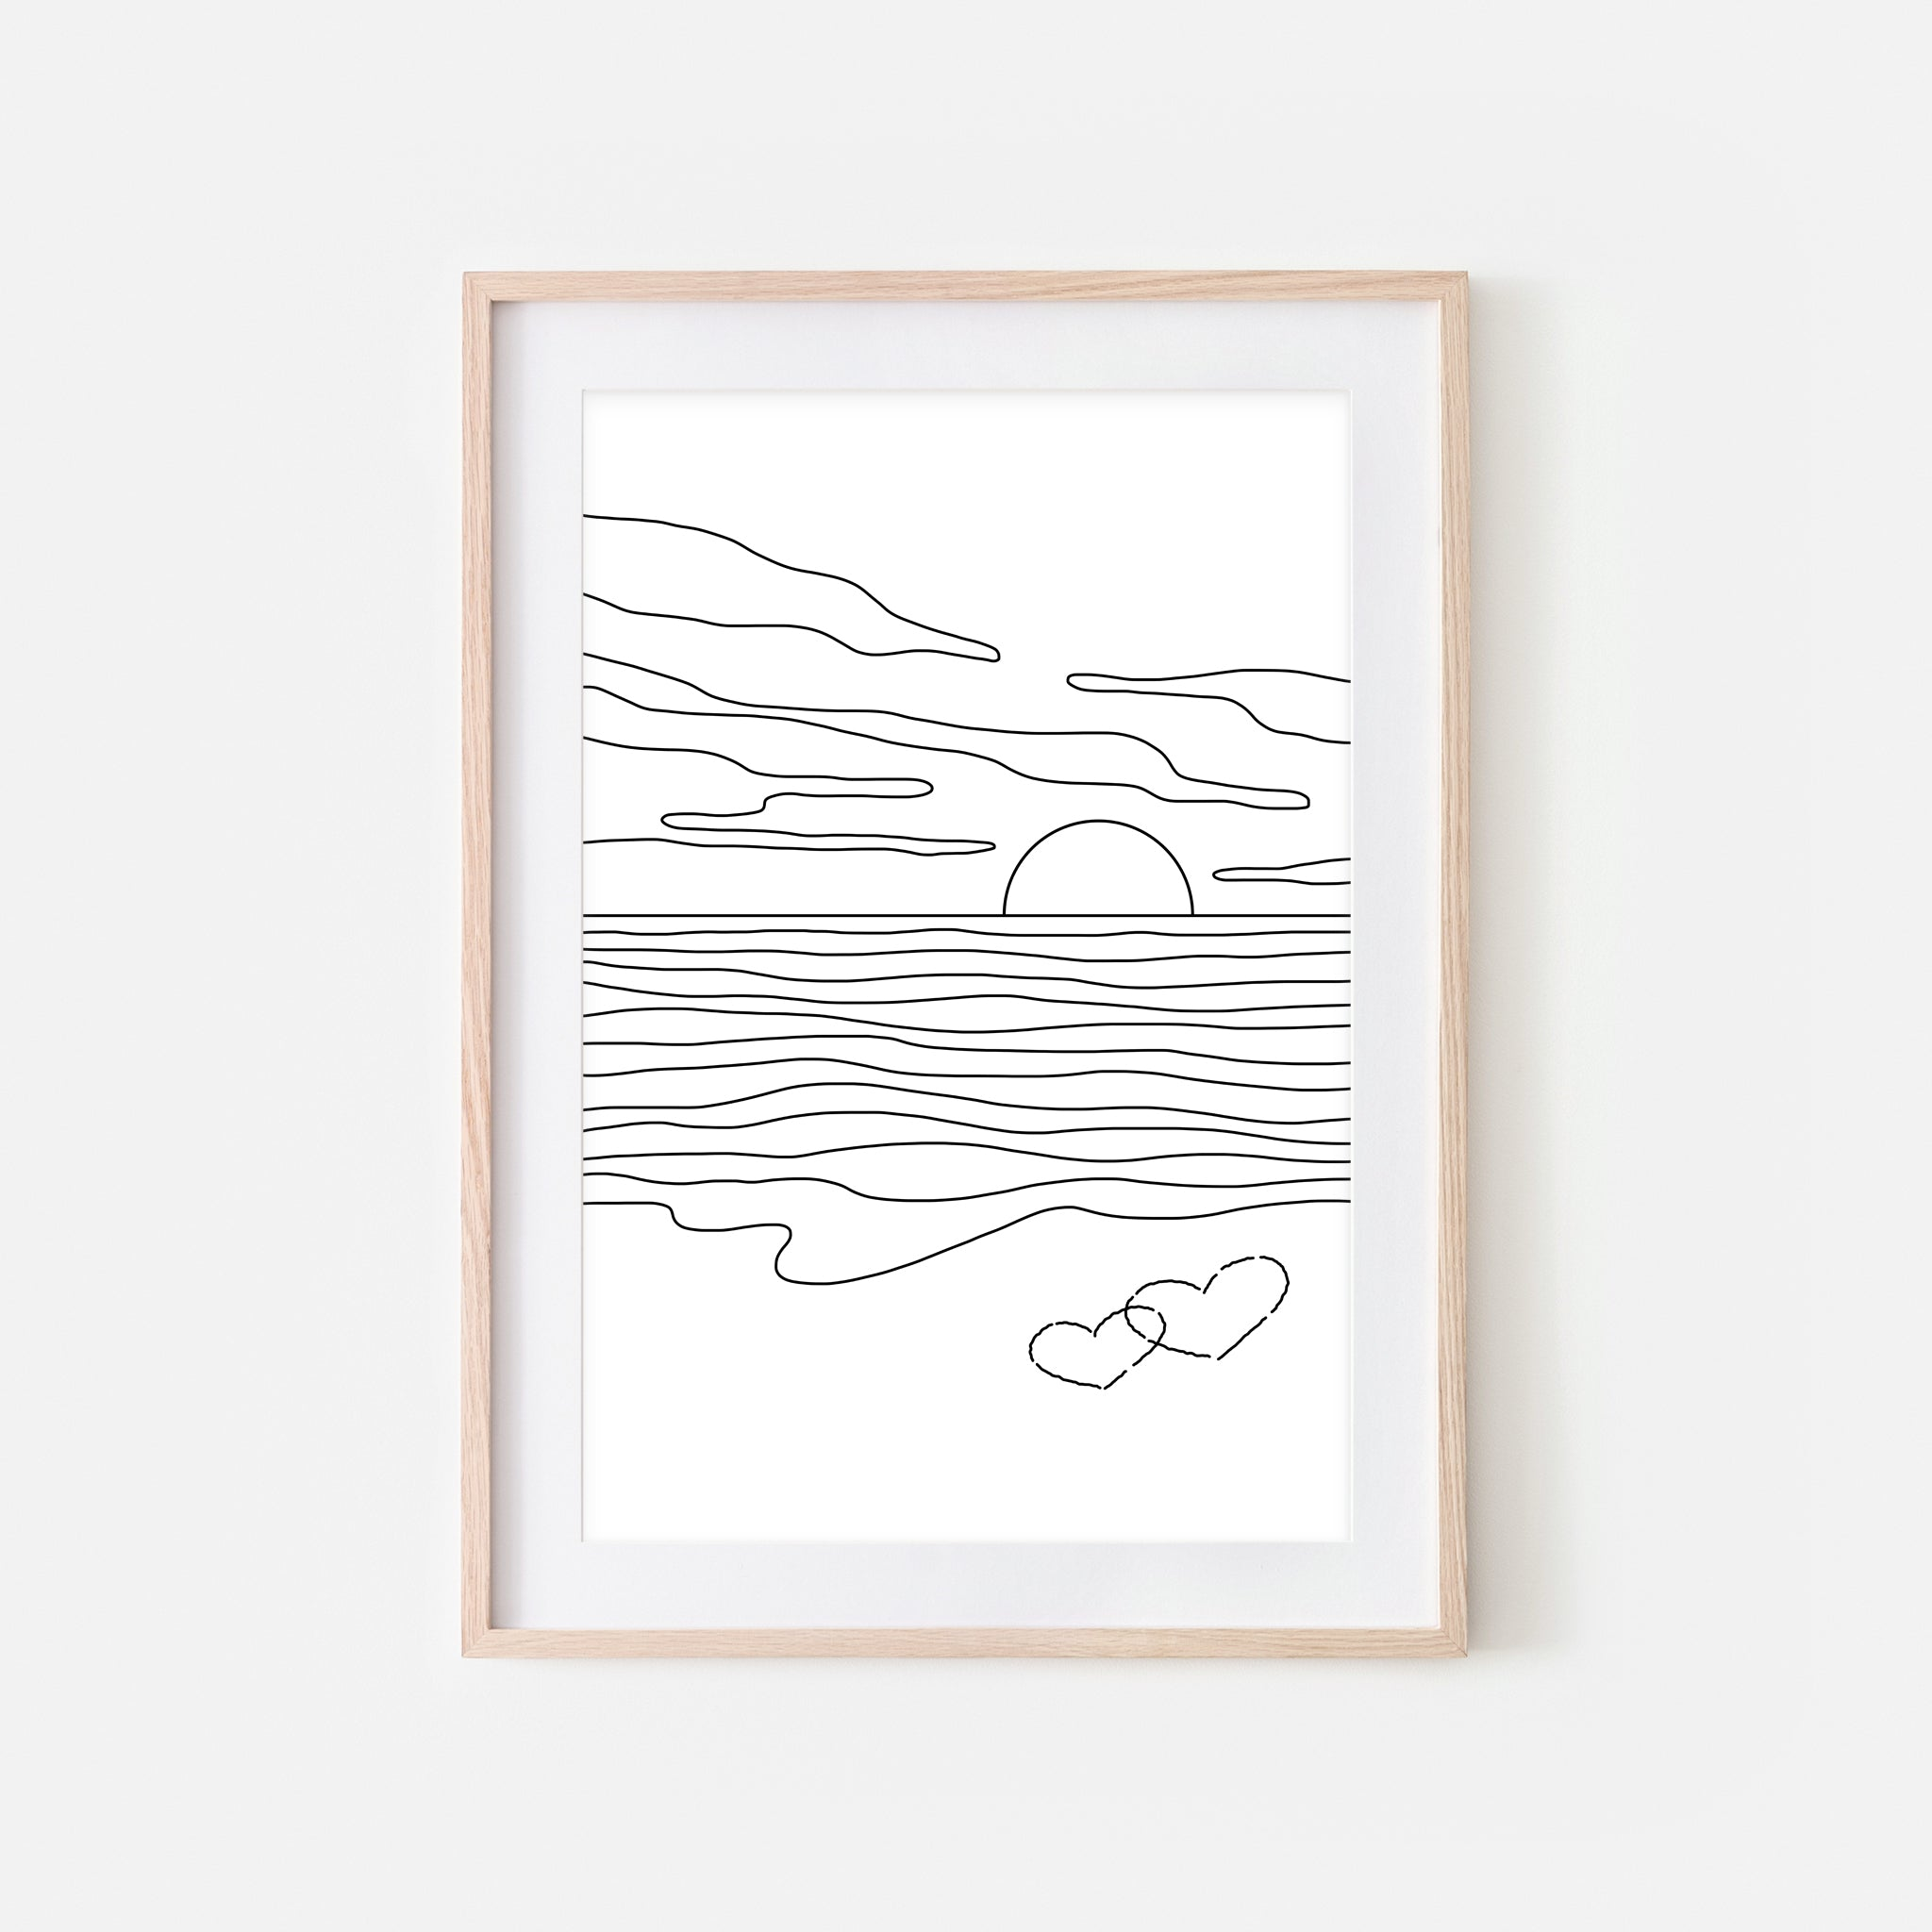 Sunset No. 6 Line Art - Minimalist Beach Ocean Landscape Wall Decor - Tropical Love Couple Bedroom Decor - Black and White Print, Poster or Printable Download